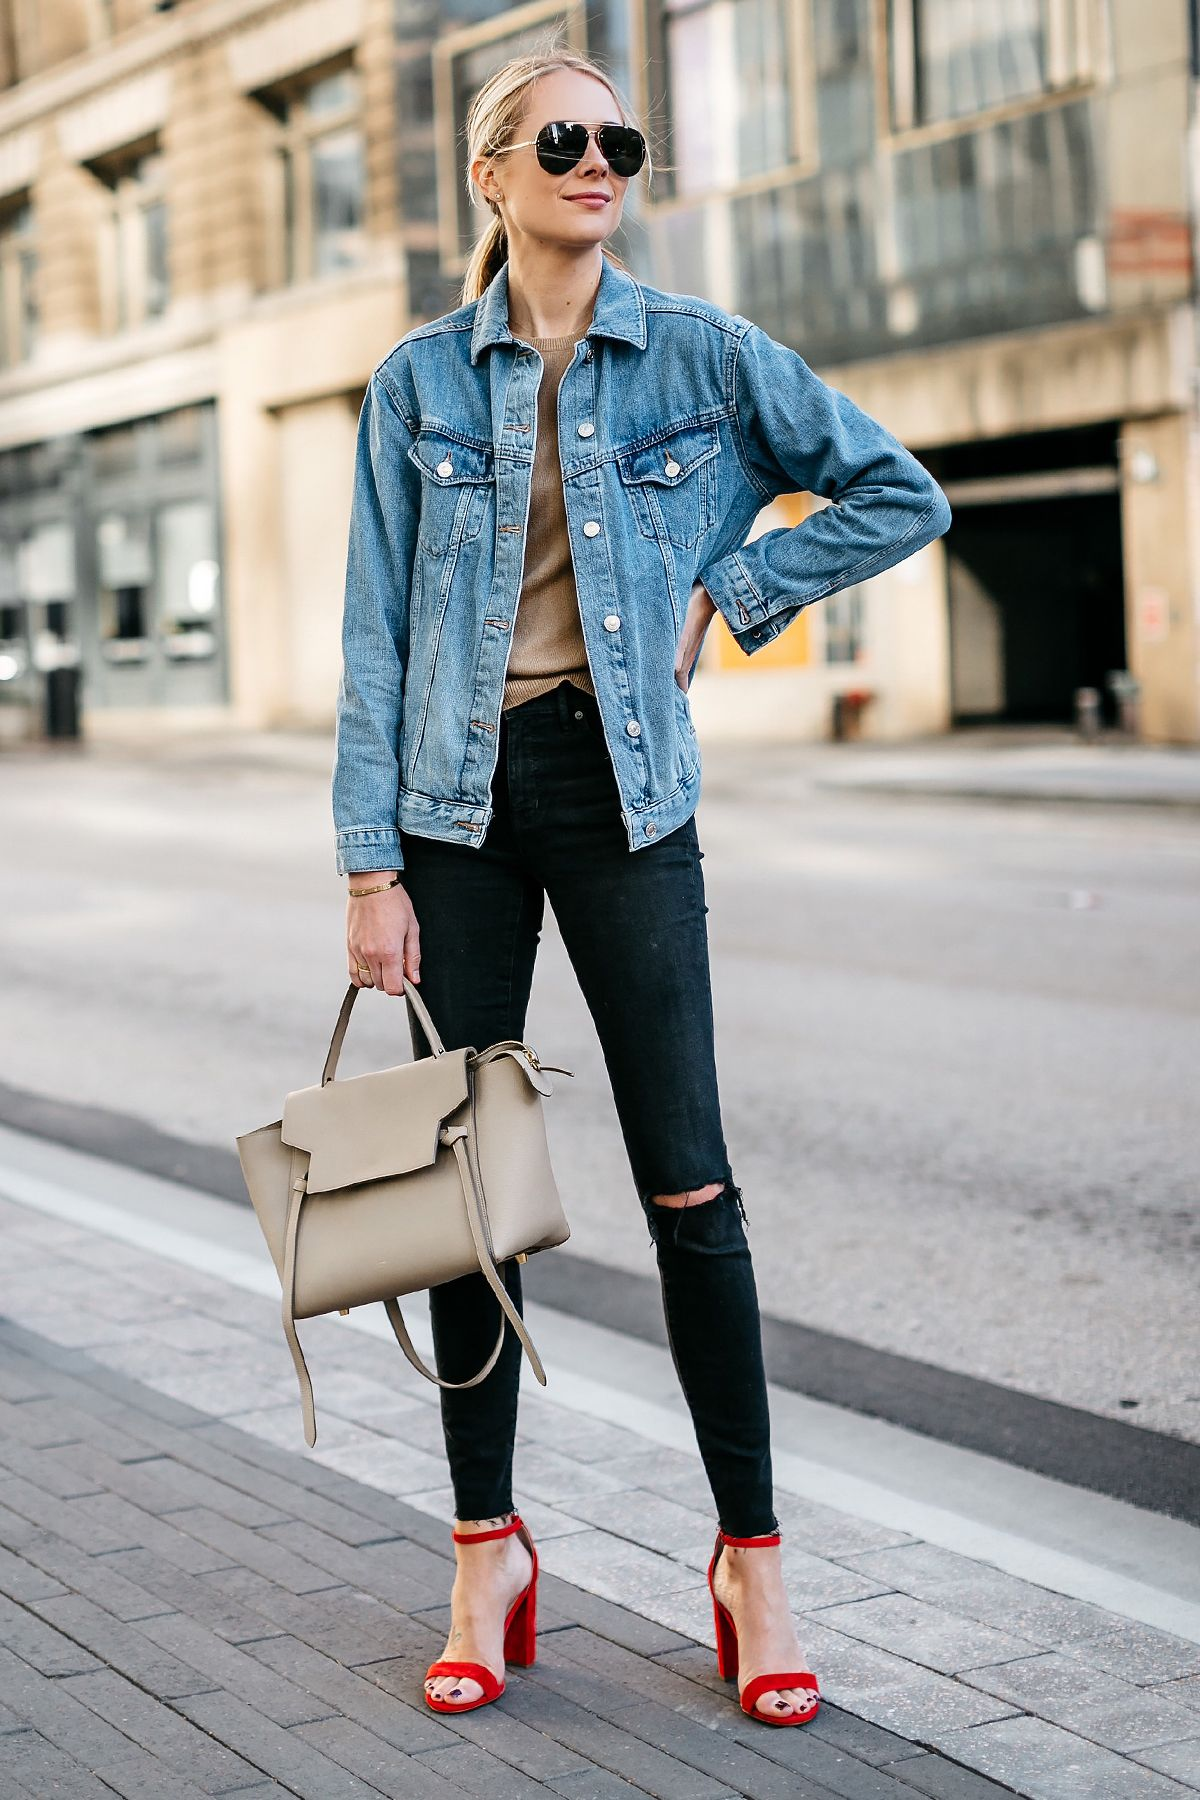 8b314d2a27 Blonde Woman Wearing Topshop Oversized Denim Jacket Tan Sweater Black  Ripped Skinny Jeans Celine Mini Belt Bag Celine Aviator Sunglasses Red  Ankle Strap ...